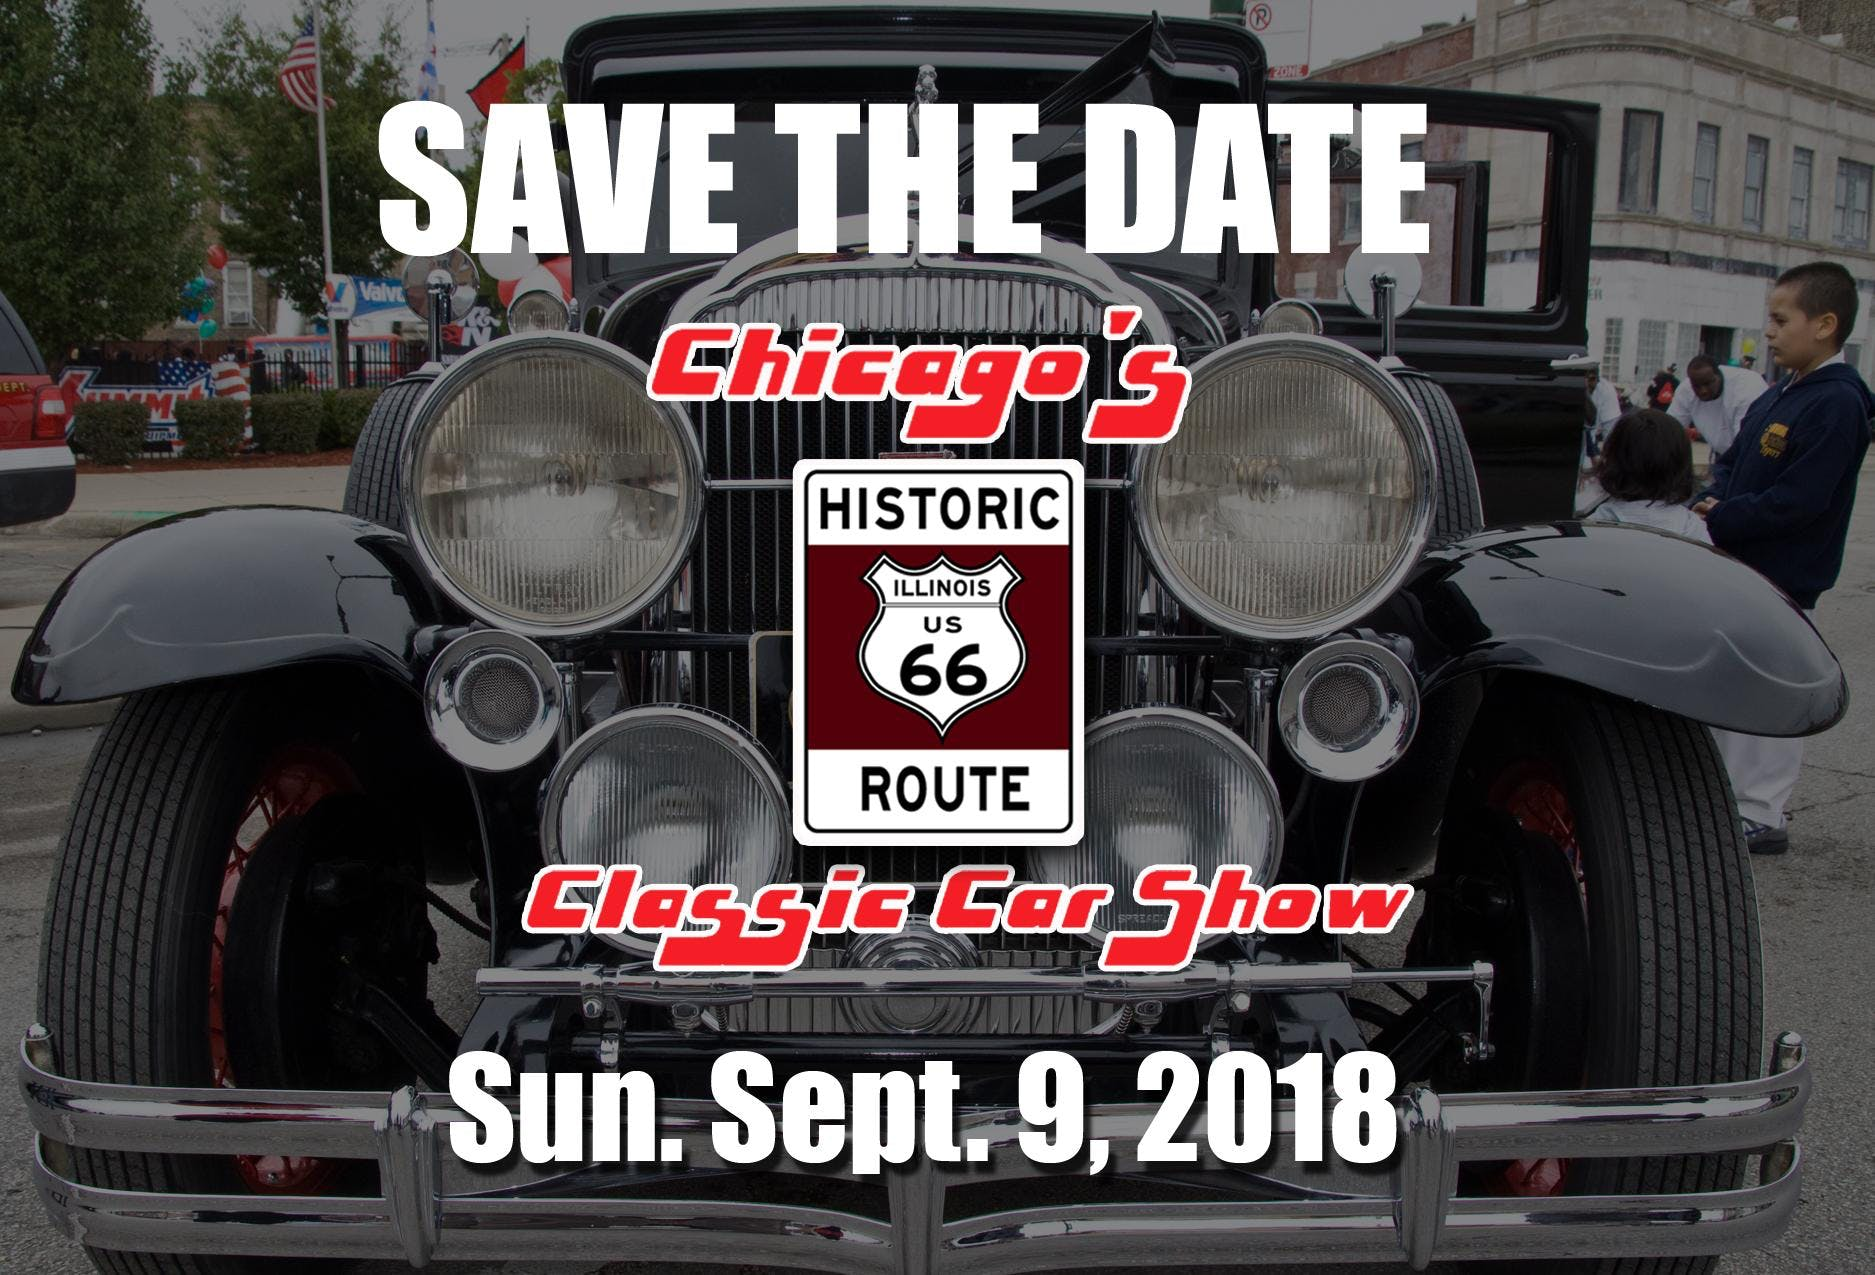 Chicagos Historic Route Classic Car Show At Ogden Ave Chicago - Route 66 classic car show